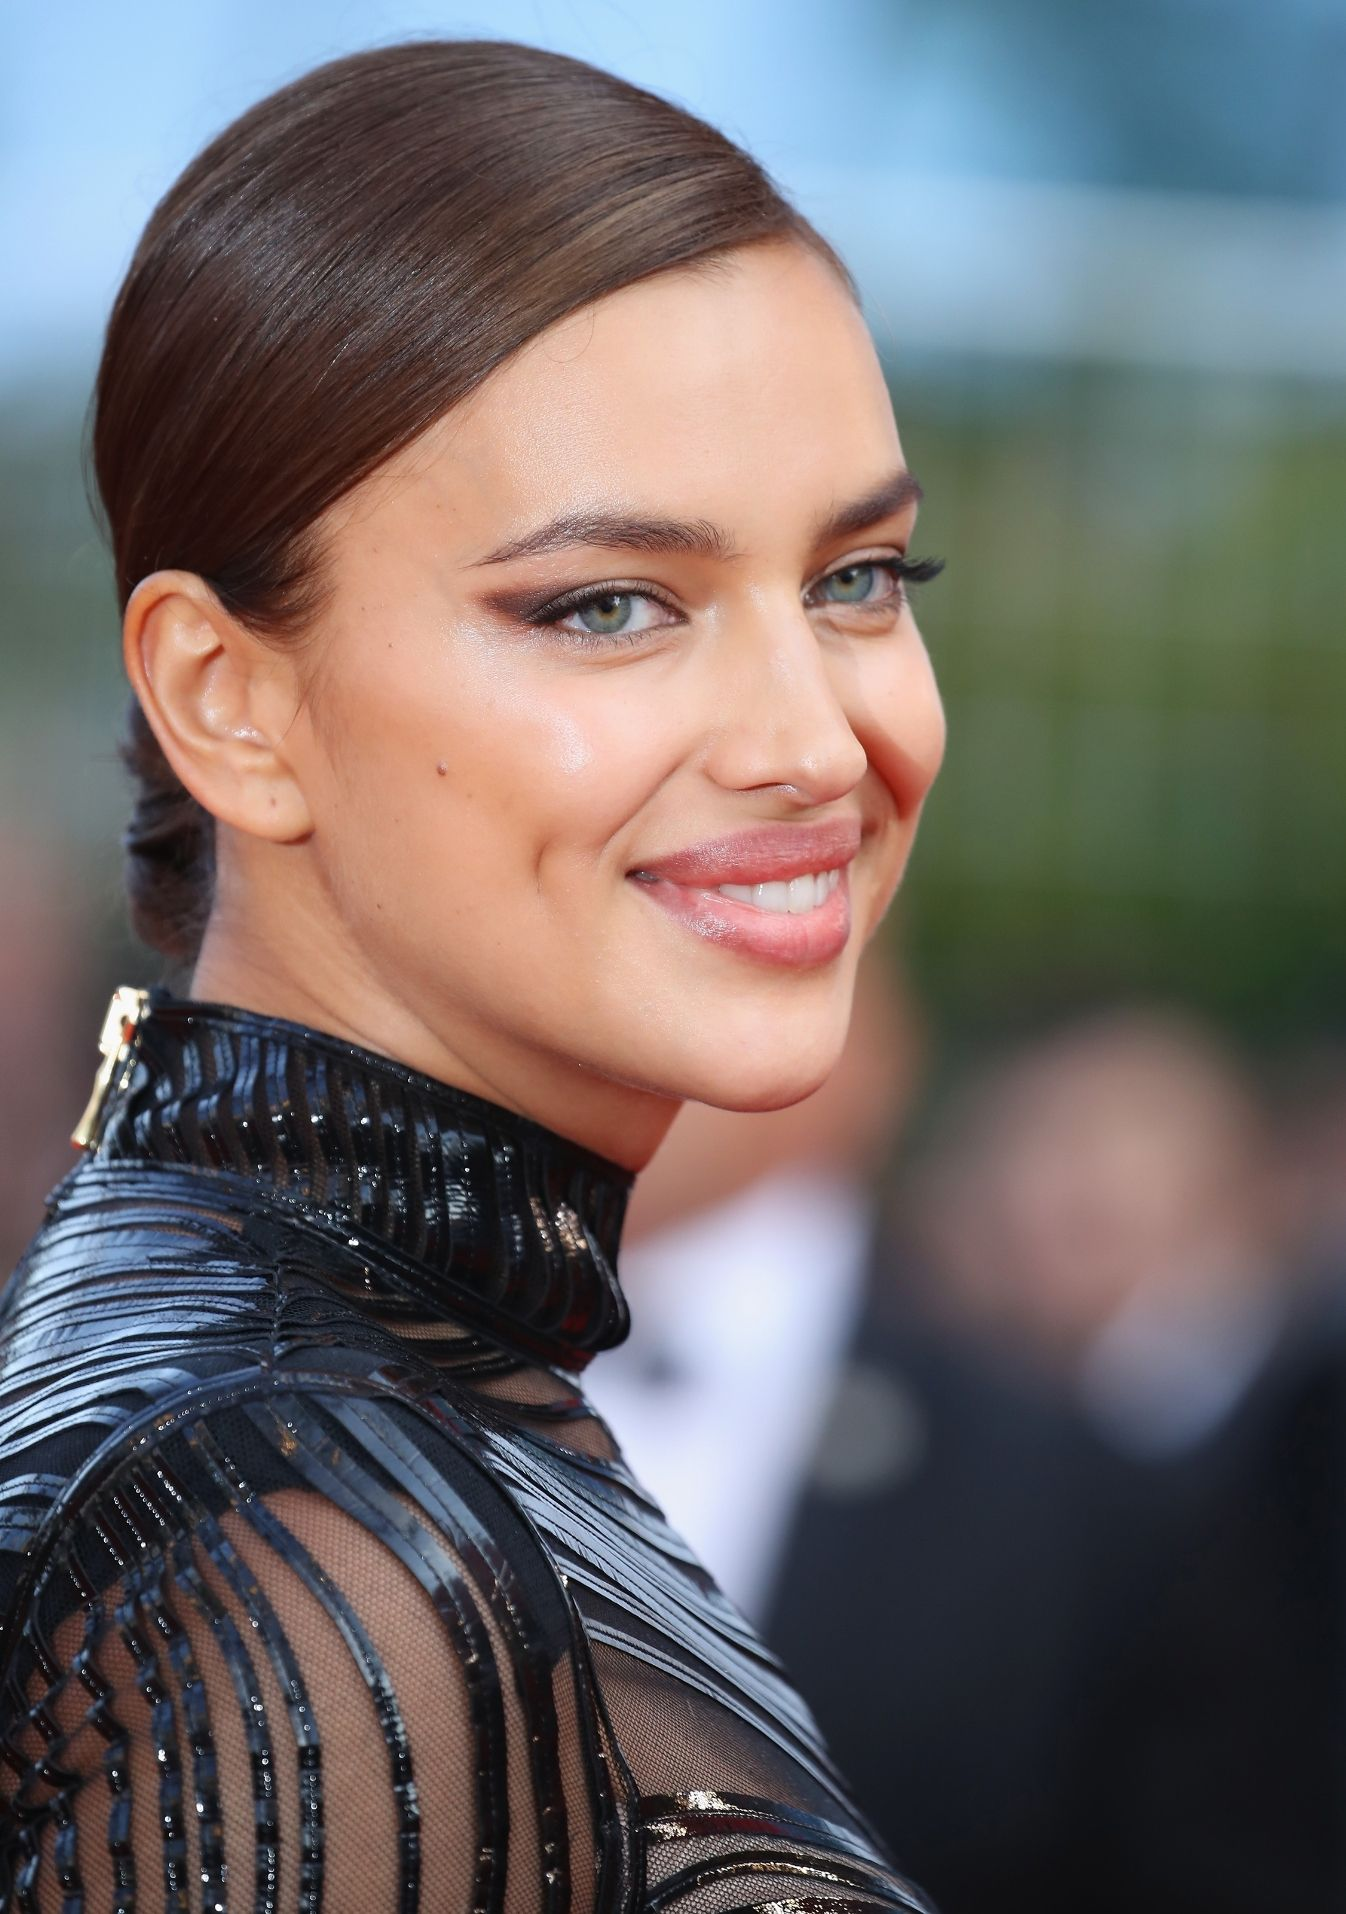 Irina Shayk slicked hairstyles 2017 Cannes